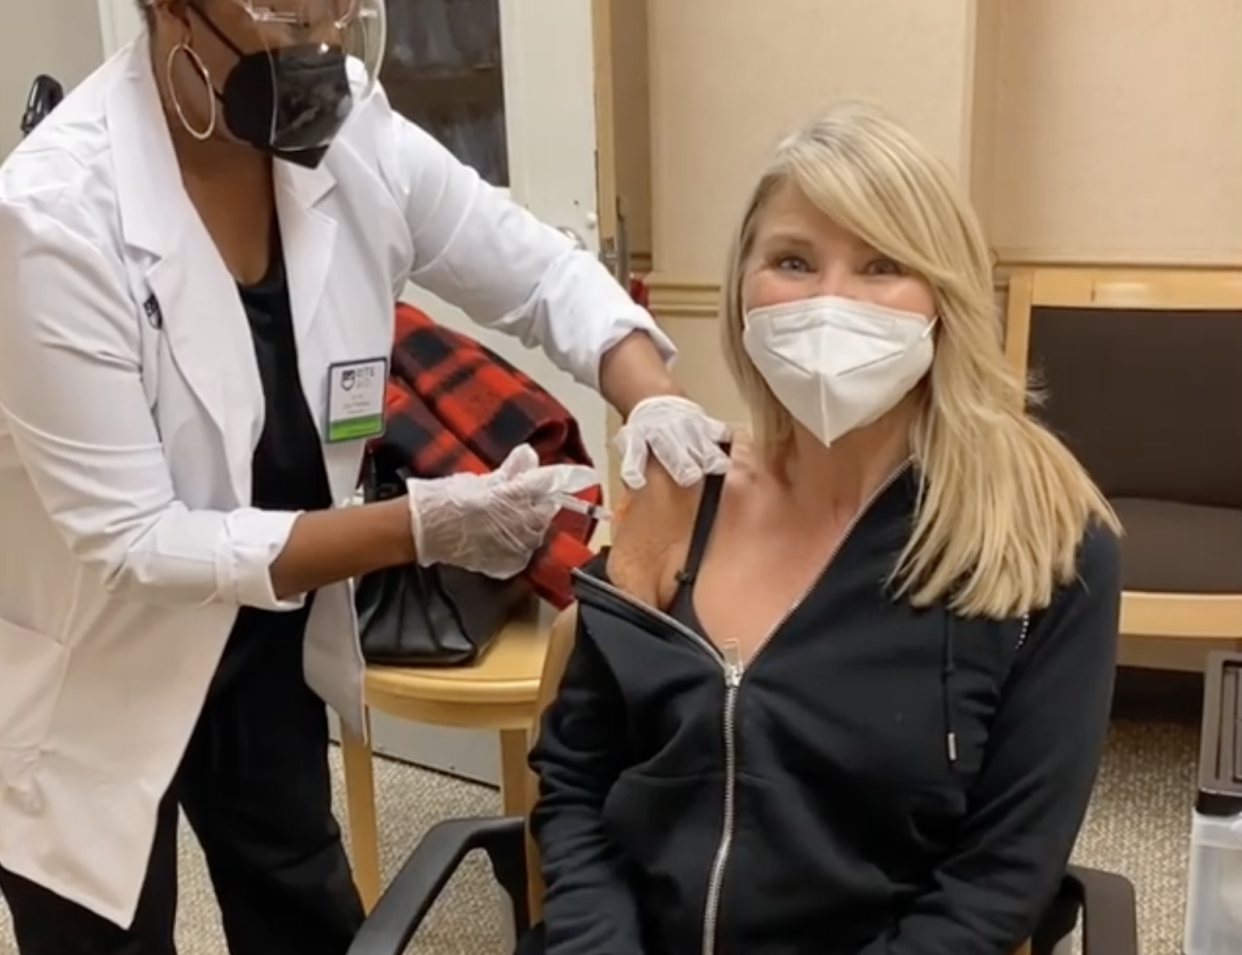 Christie Brinkley is one of many celebrities to post about getting her COVID-19 vaccine and to encourage others to follow her lead. But does that actually help? (Photo: Instagram)